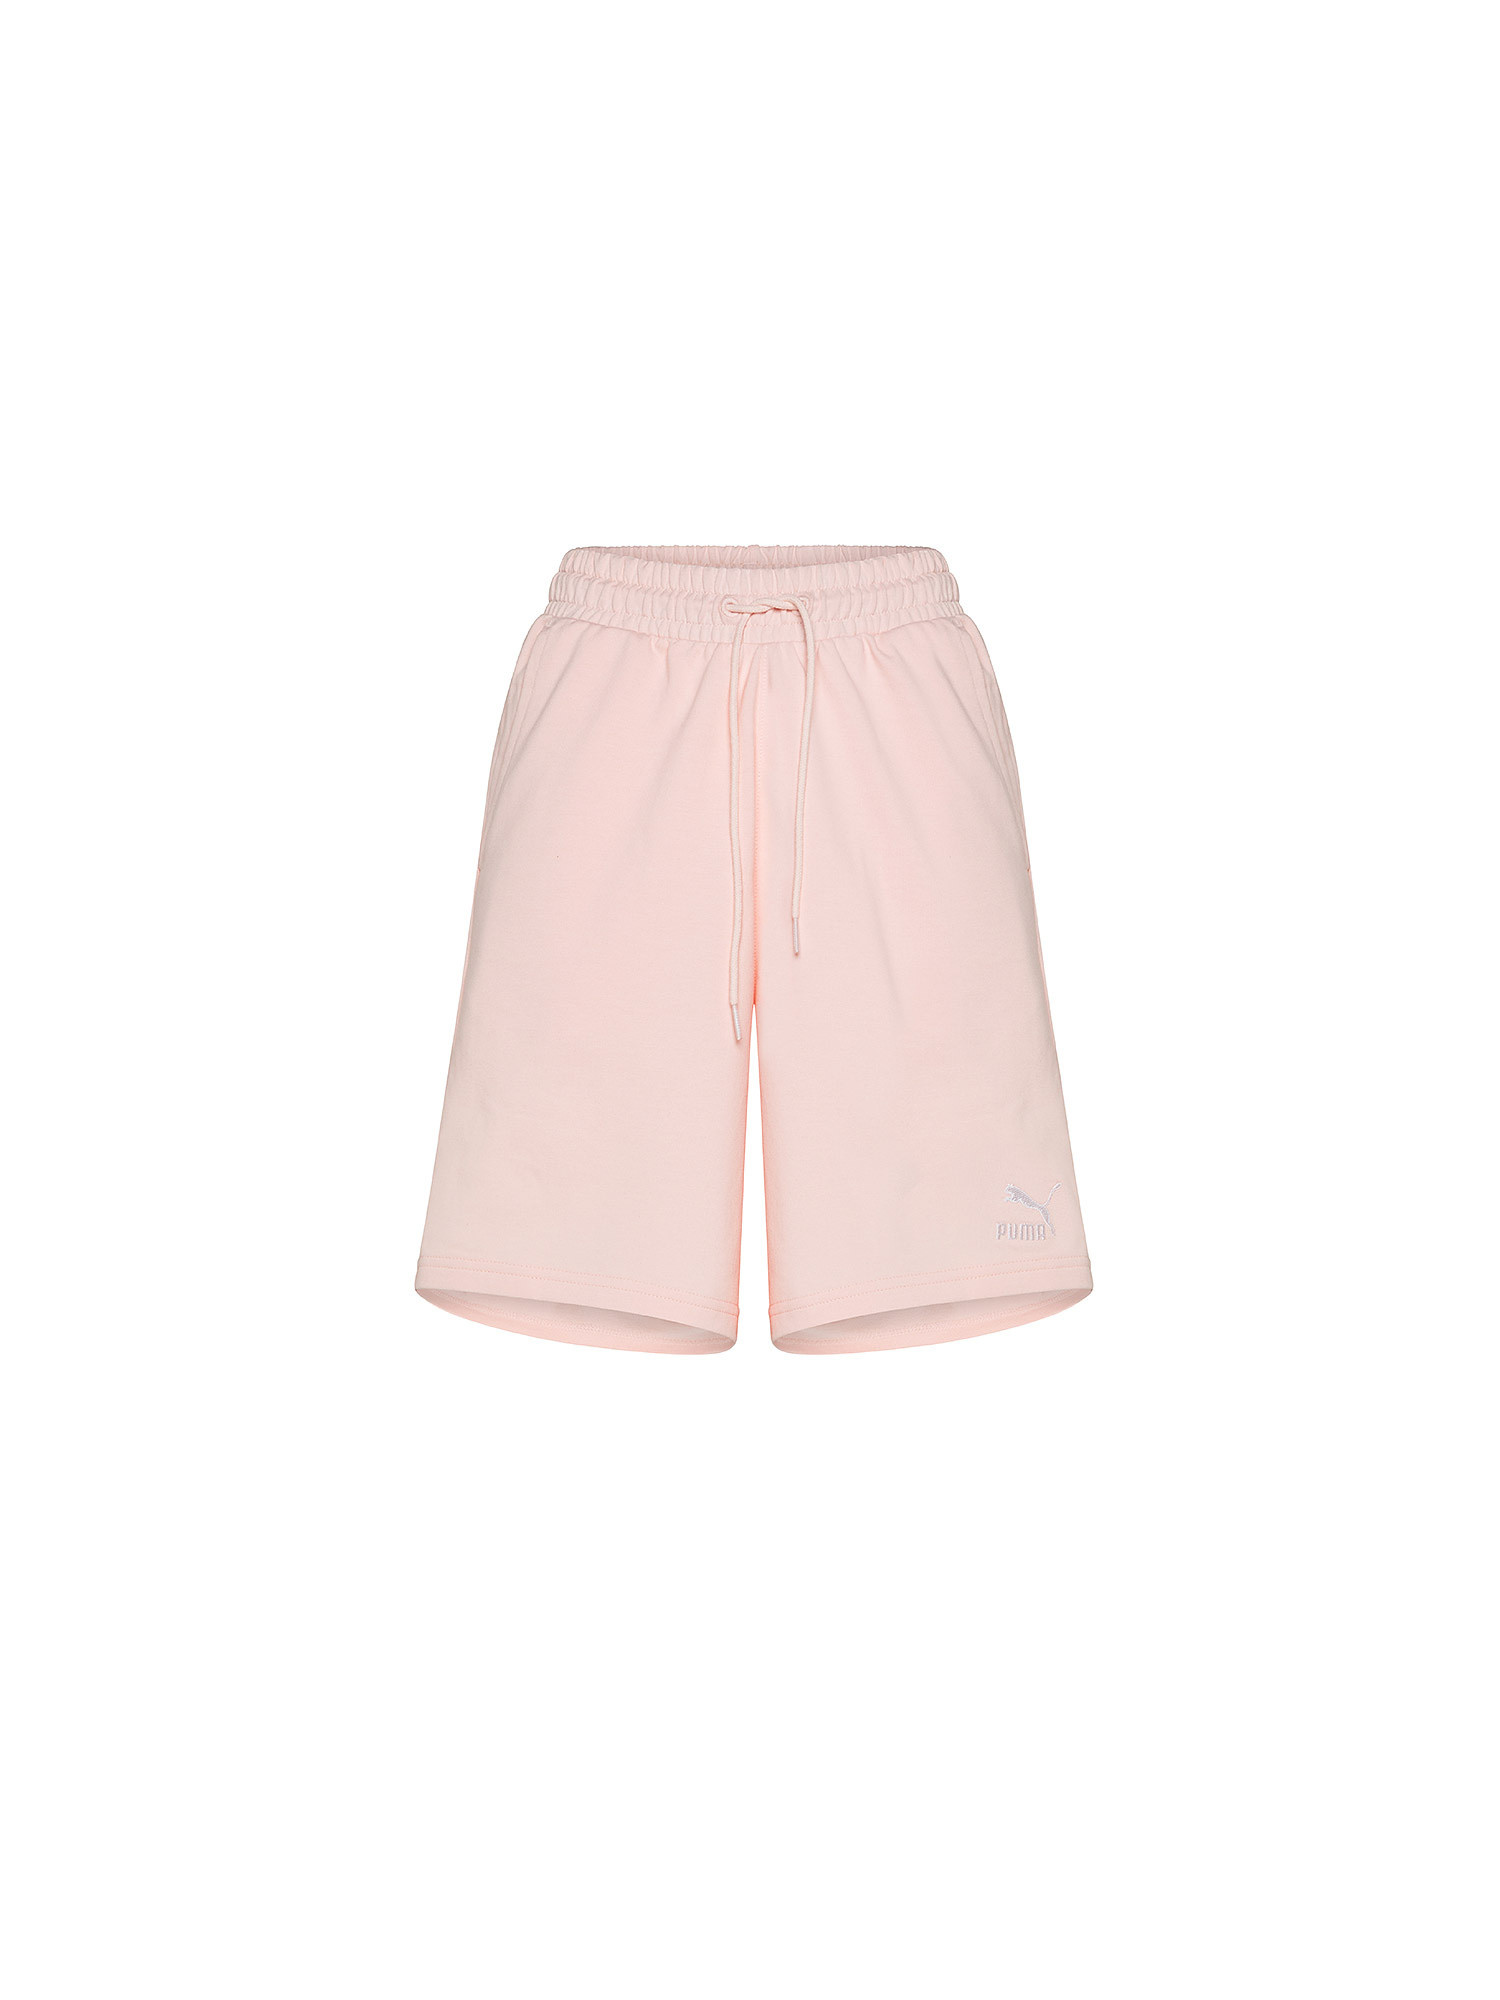 Knitted Shorts, Rosa, large image number 0